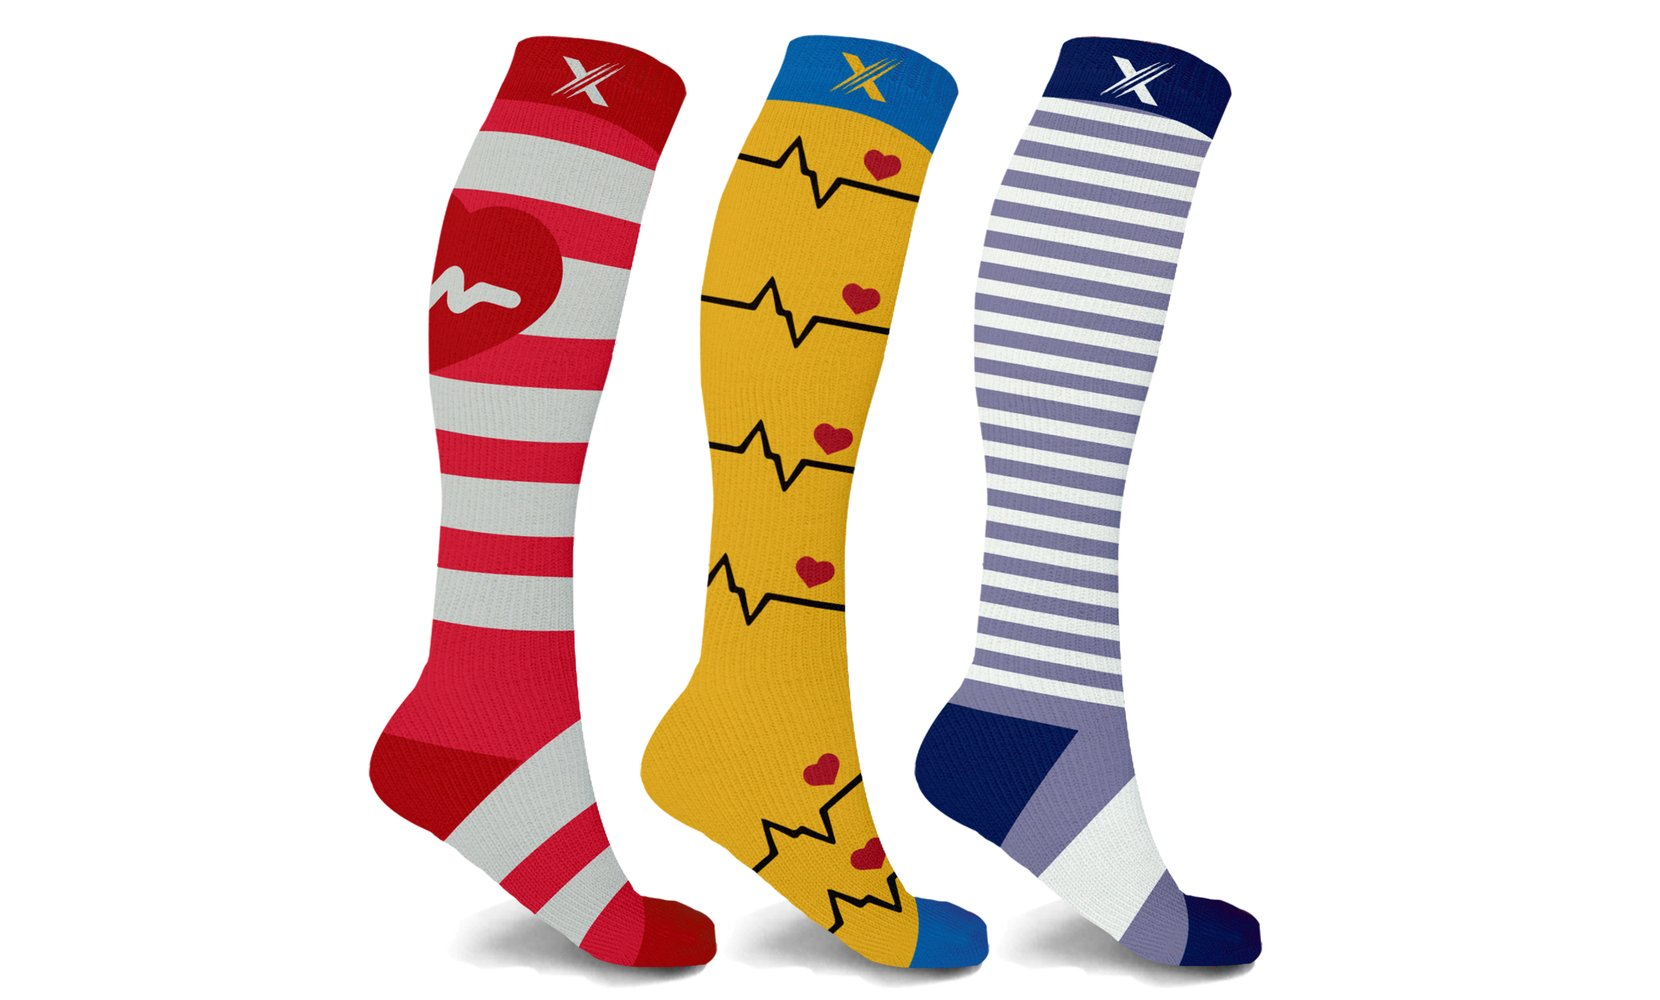 XTF Medical Prints Knee-High Compression Socks (3-Pairs or 6-Pairs)